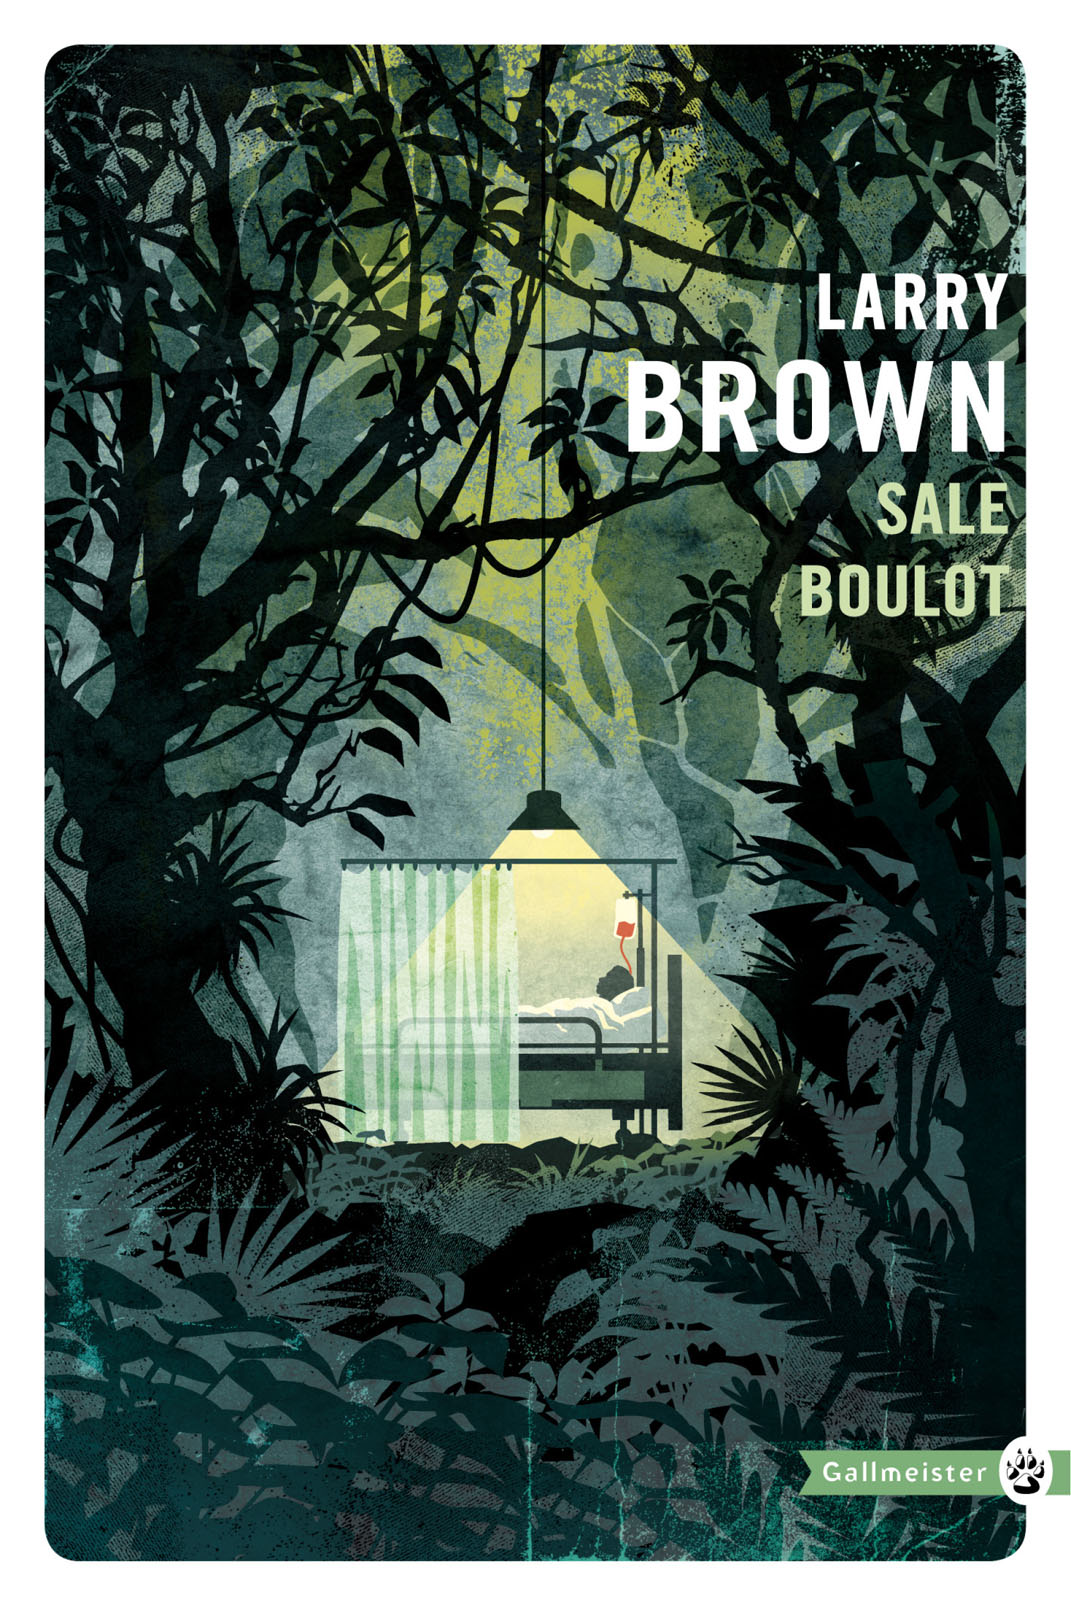 Sale boulot | Brown, Larry